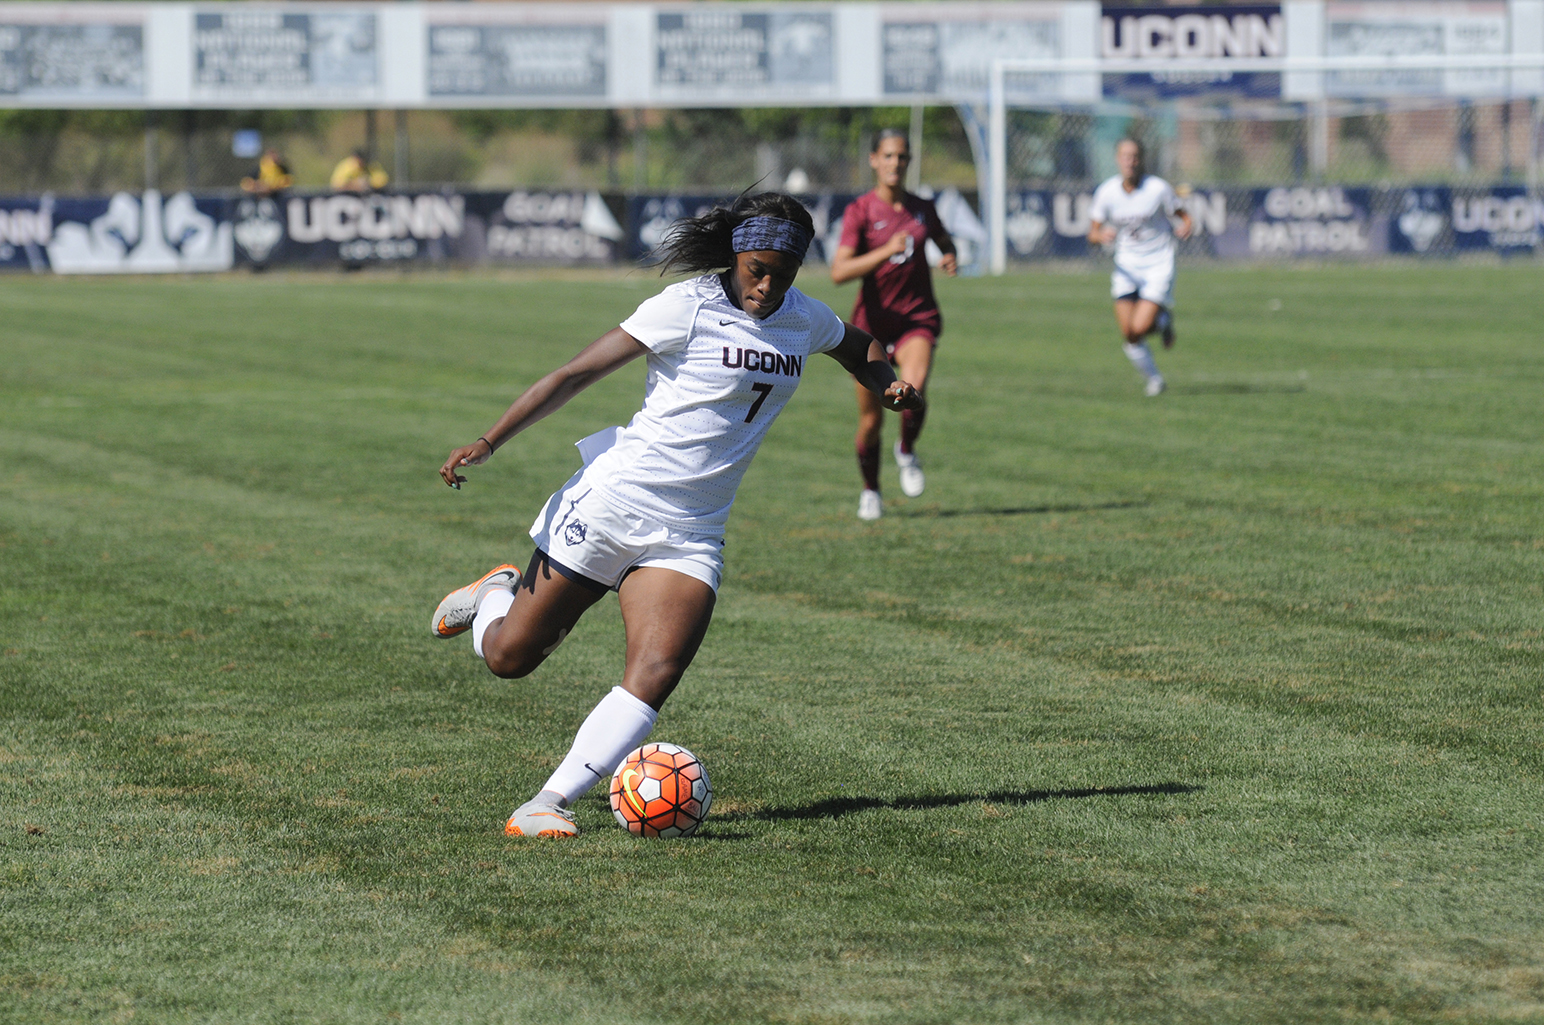 UConn women's soccer forward Liana Hinds prepares to kick the ball during the Huskies' game against Temple at Joseph J. Morrone Stadium on Friday, Oct. 2, 2015. (Amar Batra/The Daily Campus)